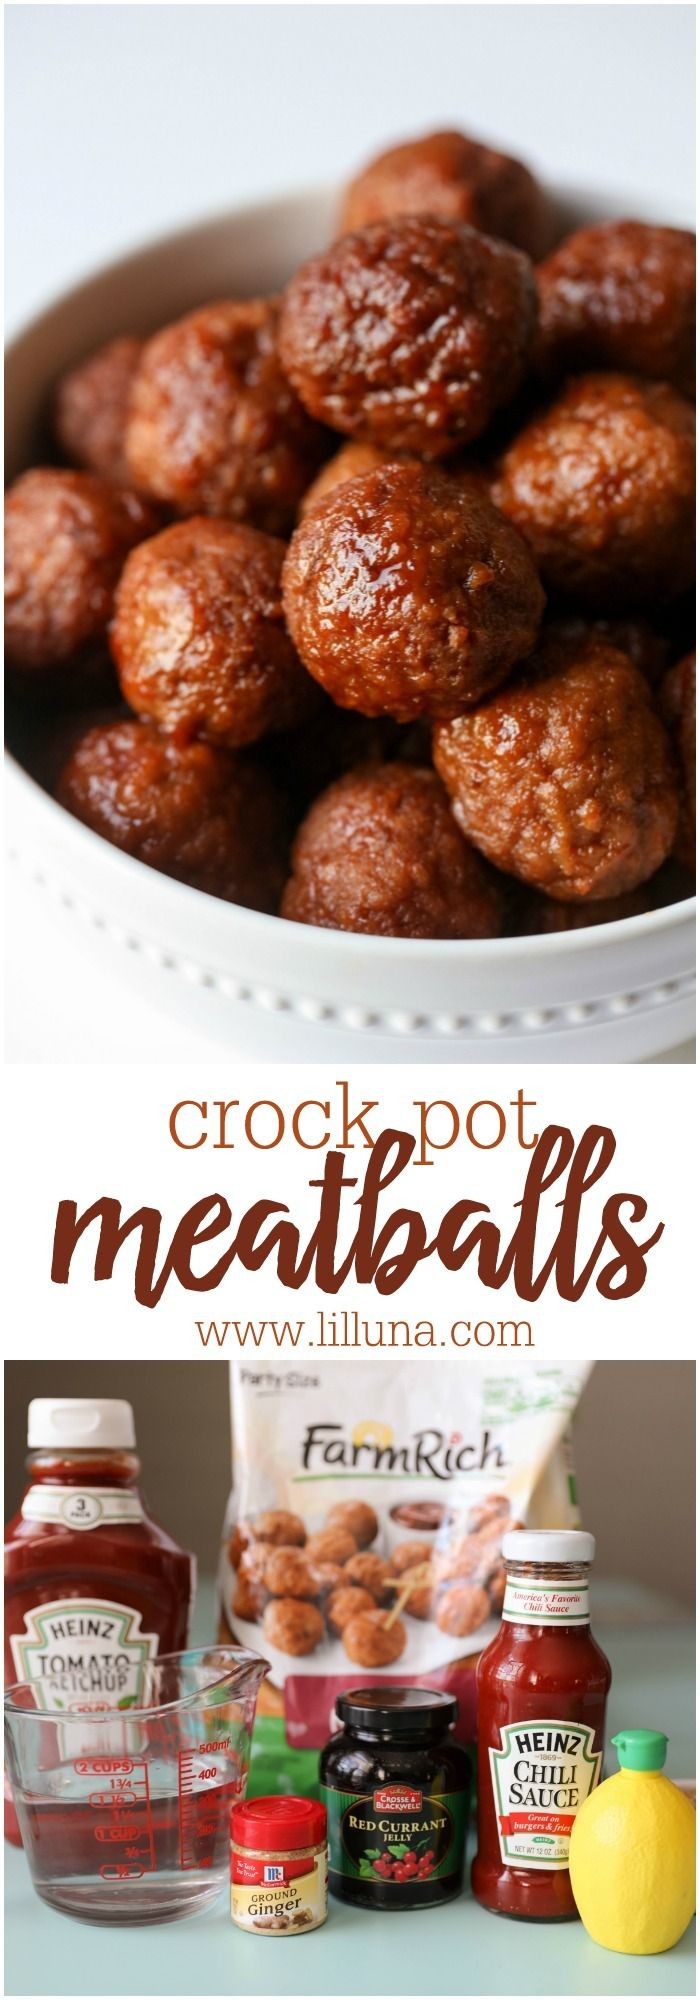 Crock Pot Meatballs - one of the easiest and tastiest meatball recipes you'll ever try! They're perfect for parties too!